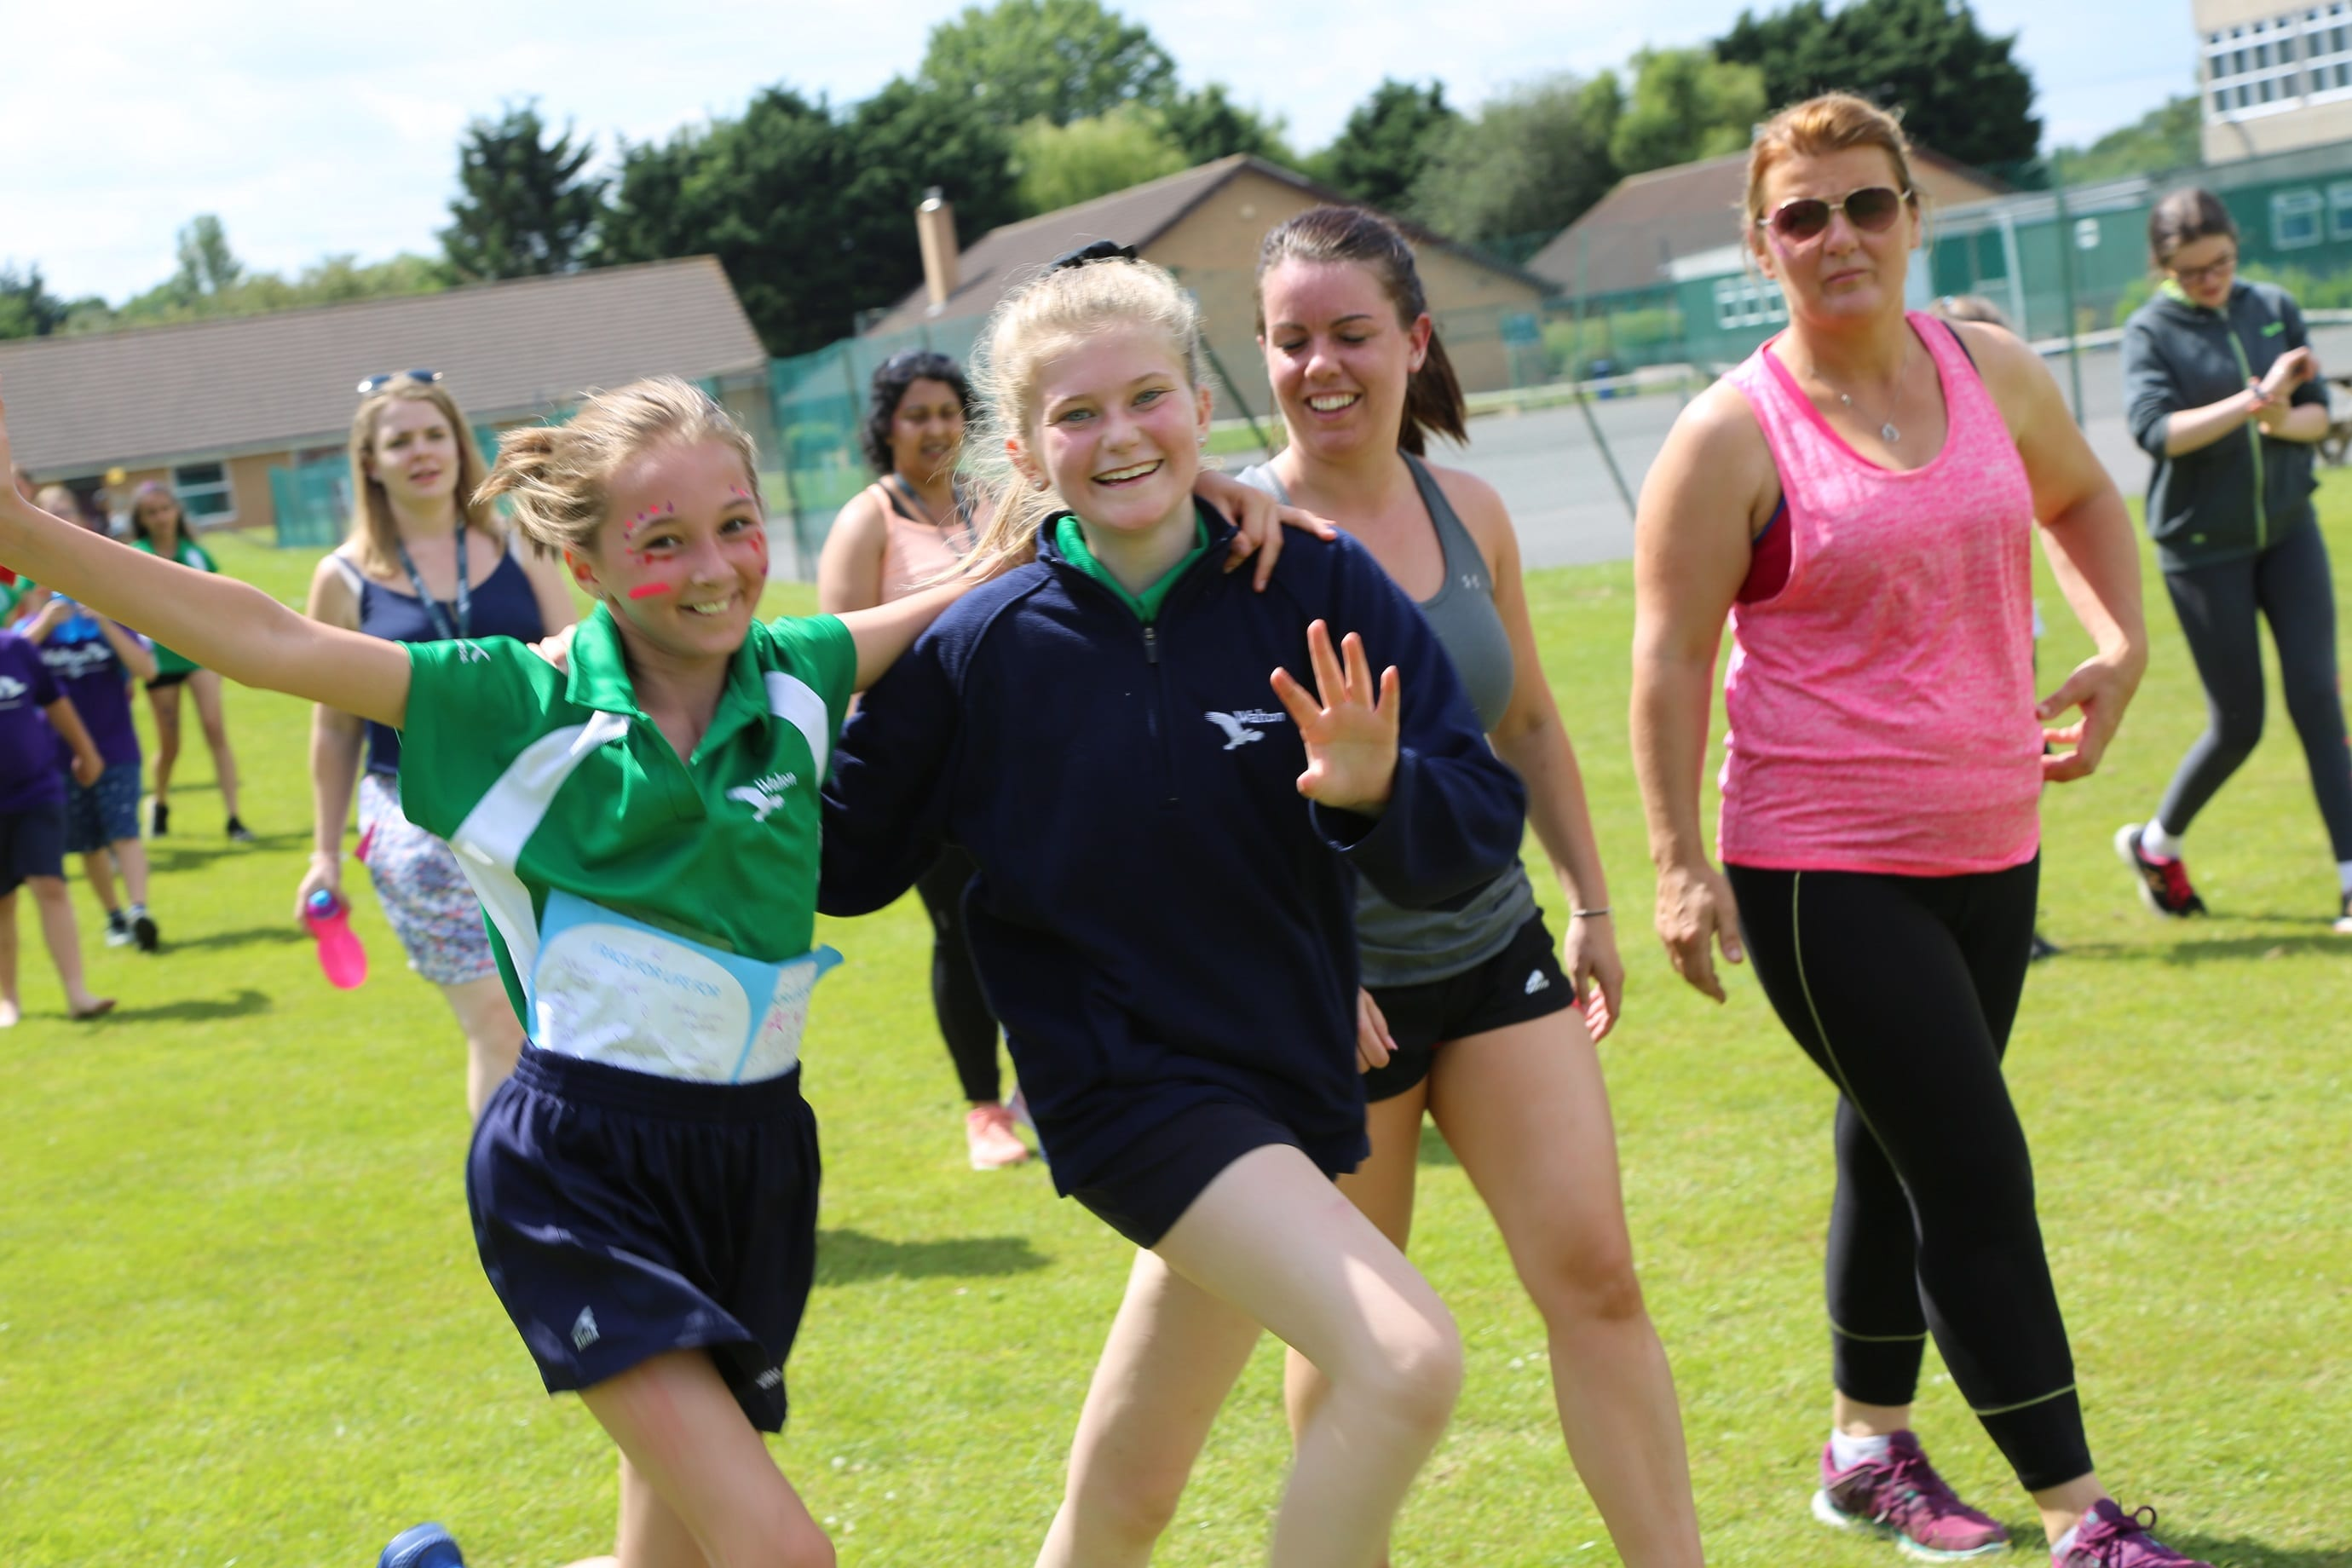 Walton 'Race for Life' raises over £5,000 for charity